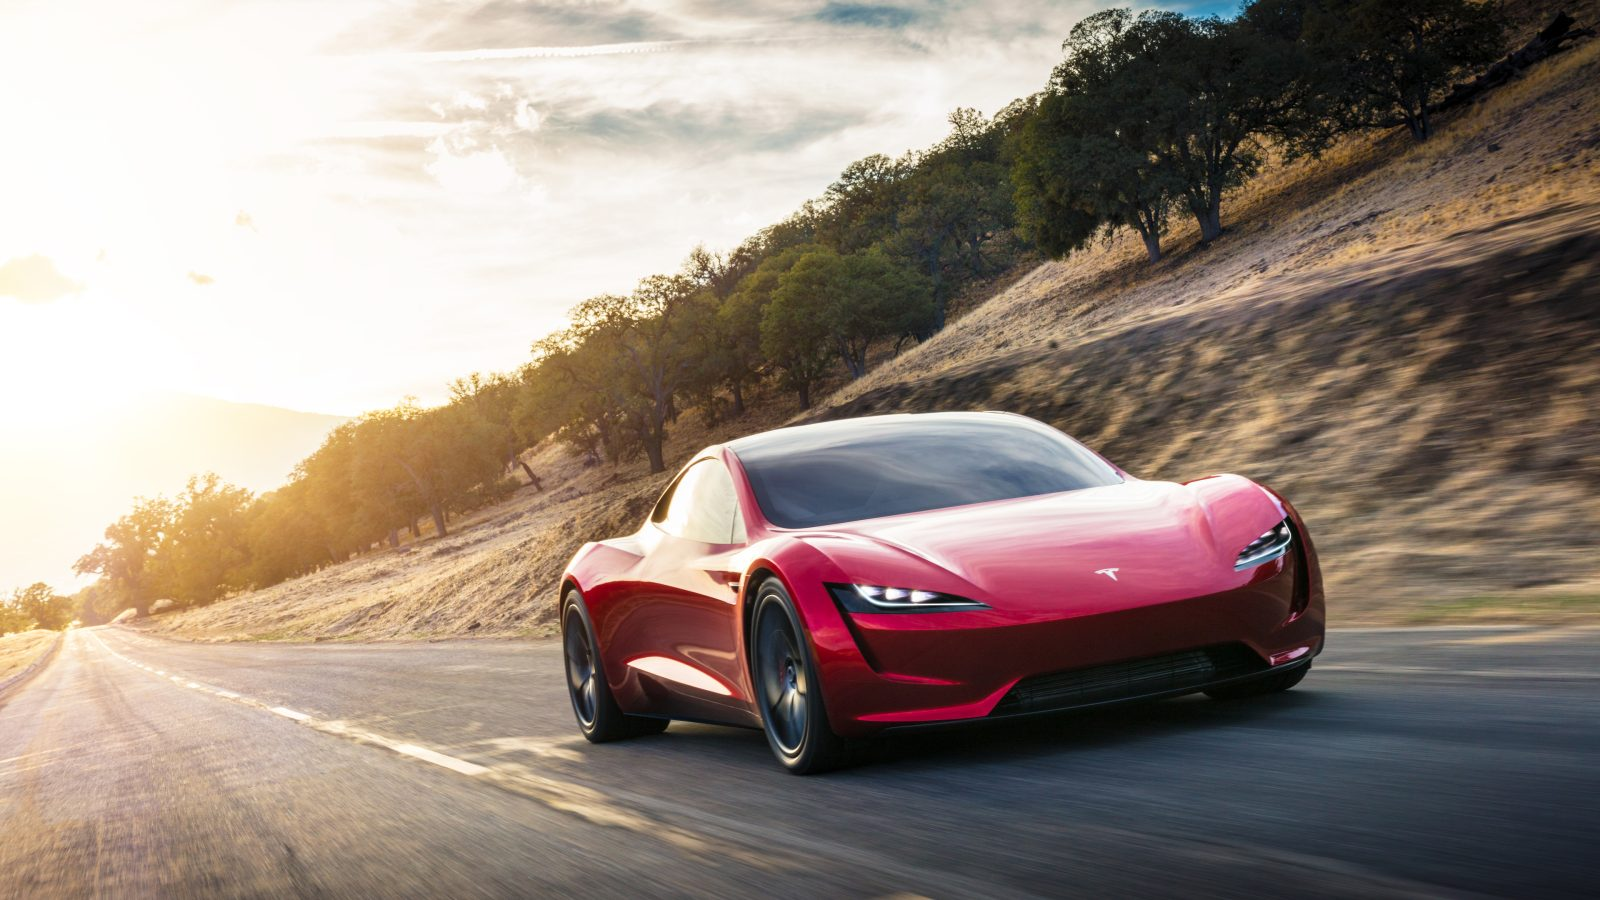 Teslas Next Gen Roadster A Speculative Technical Look At The Car Go Back Gt Gallery For Brushless Electric Motor Diagram That Will Smack Down Gasoline Powered Cars